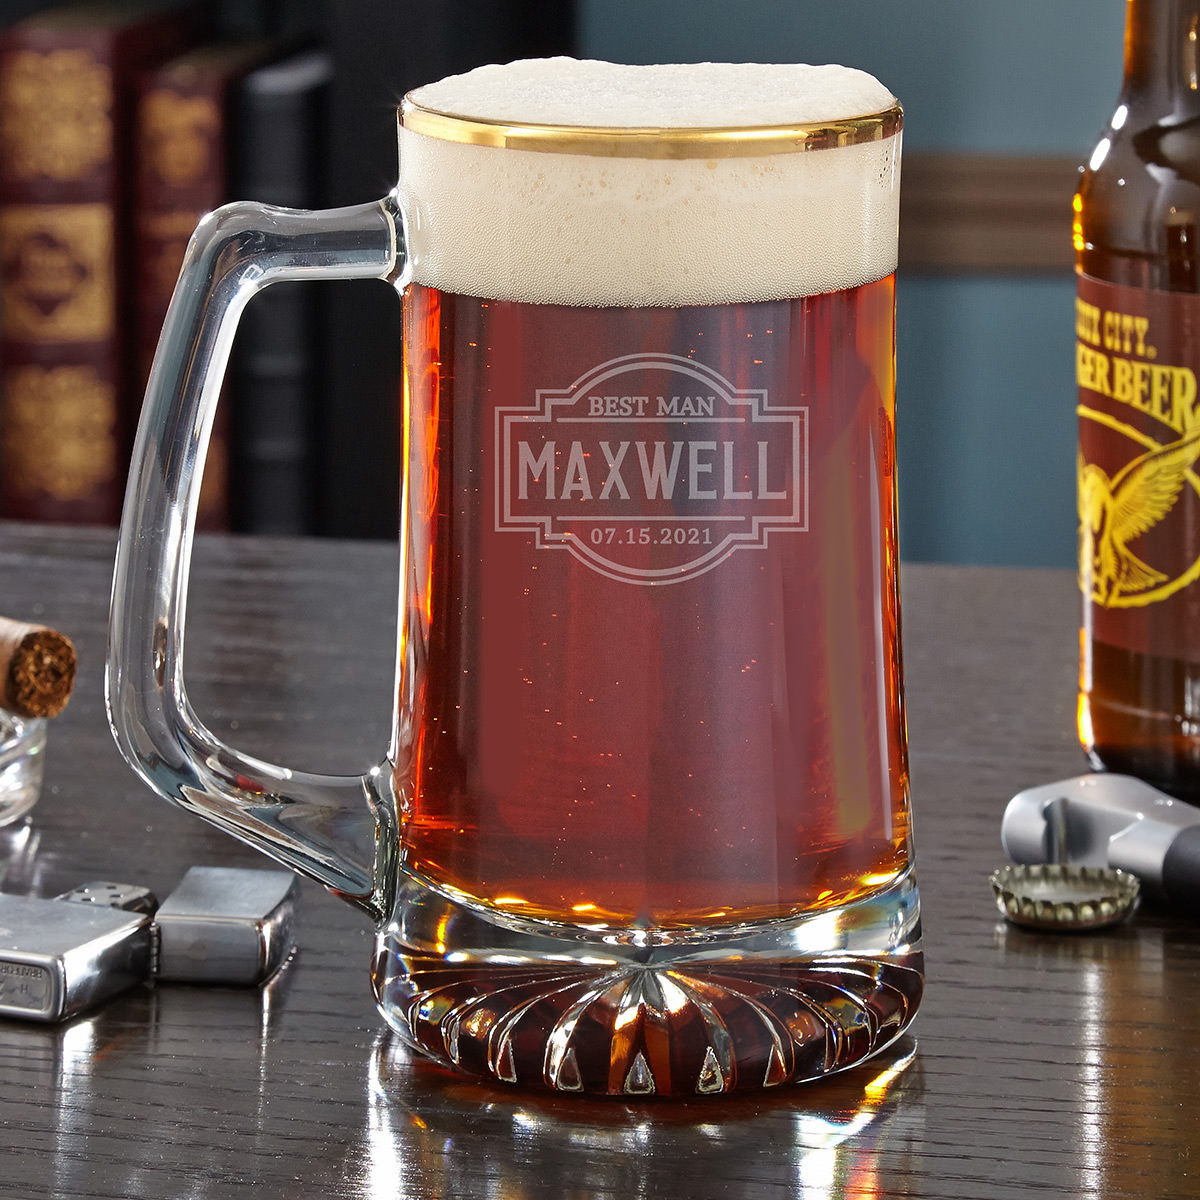 We bet you didn't think a beer mug could be this sophisticated. This handsome personalized beer mug has a 22k gold rim, a beautiful starburst base, and a cool engraved design. Featuring a title, name, and date of your choosing, this mug is meant to comm #mug